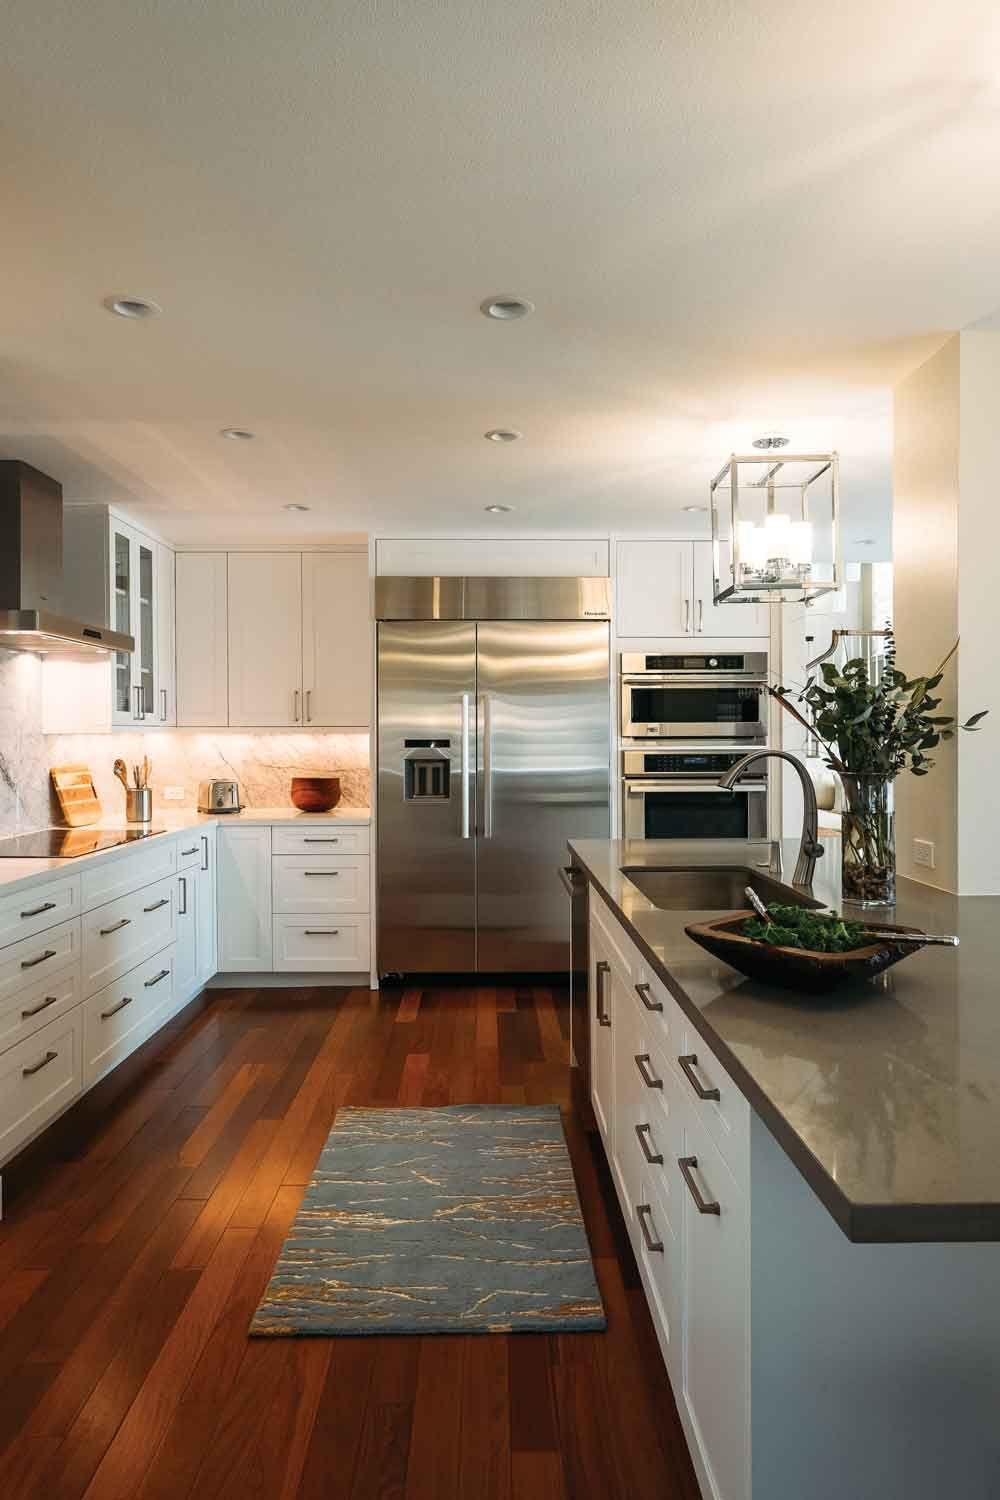 kitchen remodel hawaii and bathroom cabinets home remodeling indich collection marble backsplash ipe wood floors